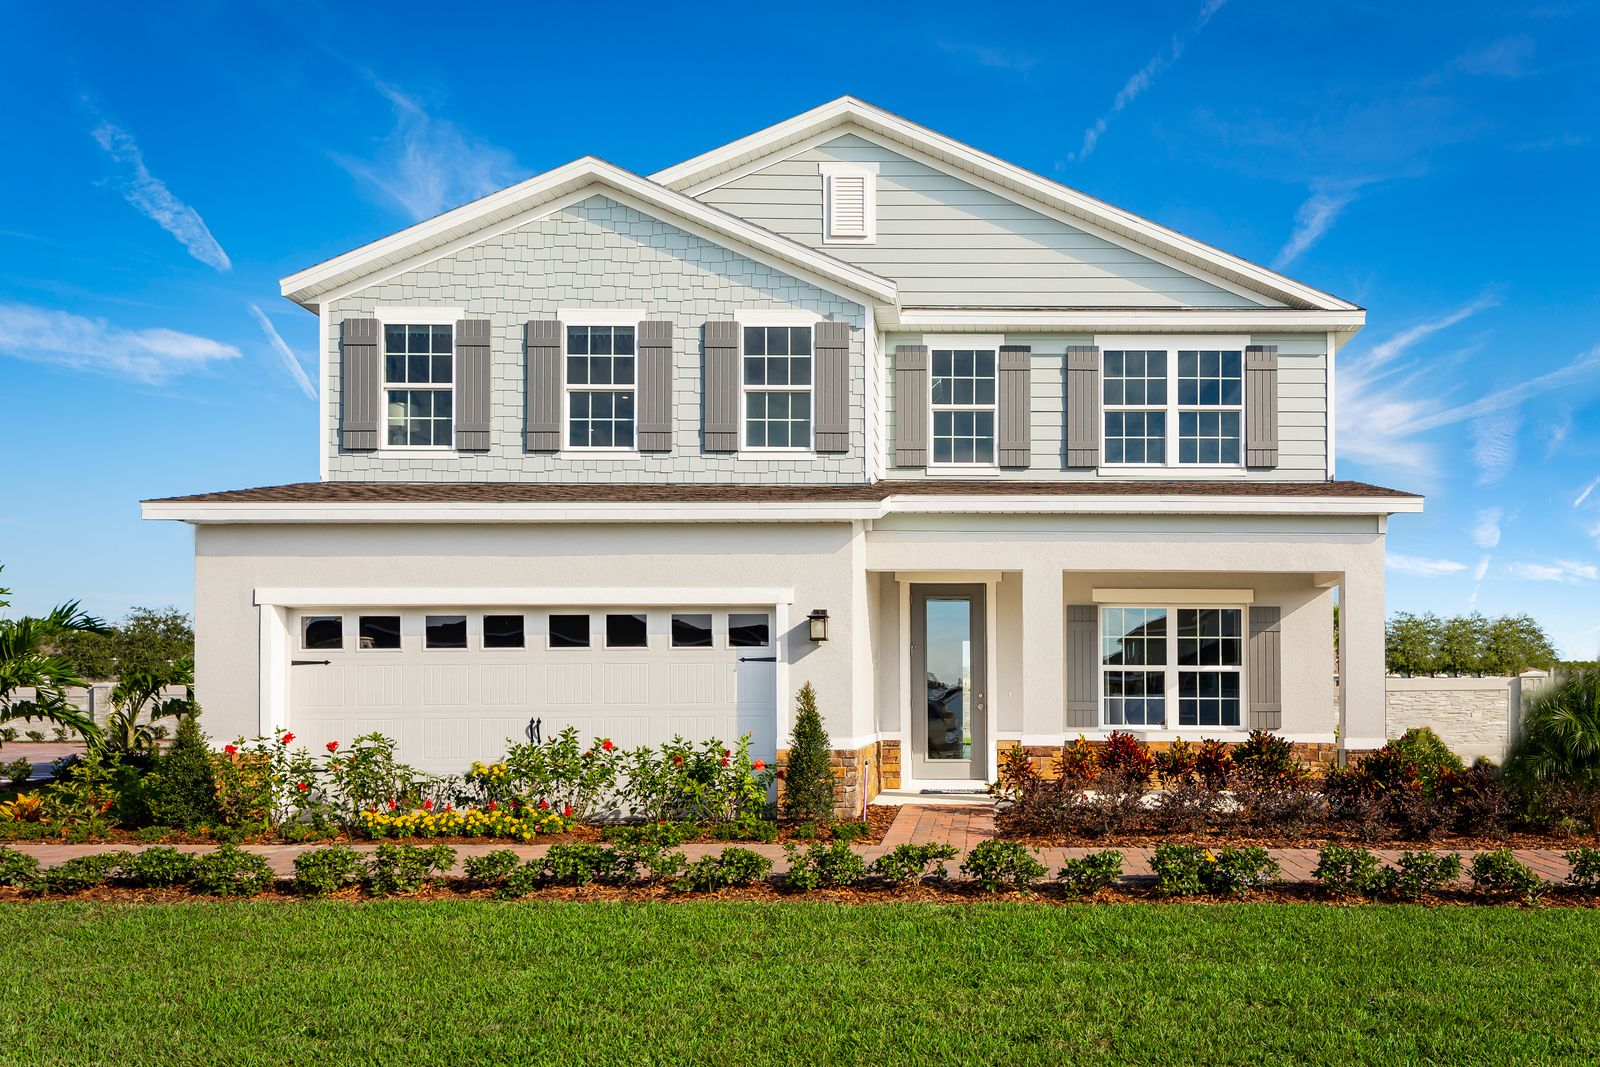 Welcome to Kensington Reserve in Sanford, FL:Own a brand new single-family home in a beautifully amenitized gated community from the low $300s with Seminole County Schools, on the Sanford-Lake Mary border. Schedule a visit todayto learn more!